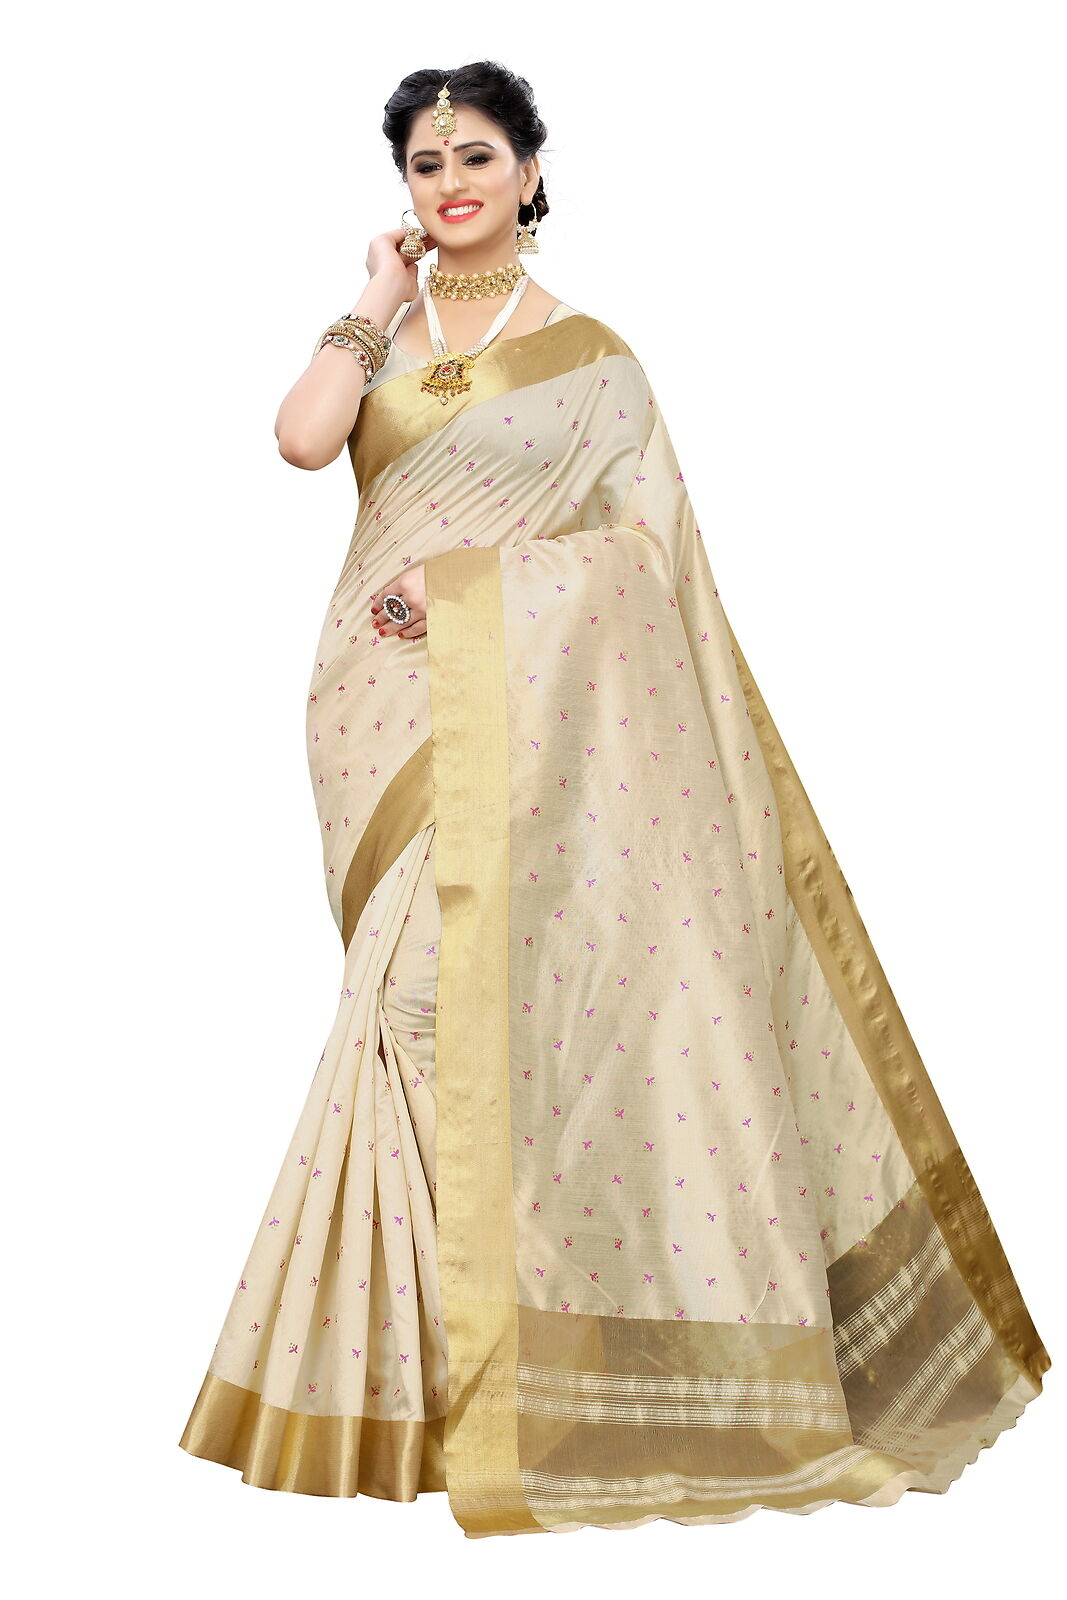 Cotton Polyester Silk Printed Sari Party Wear Cream And Pink Saree For Women